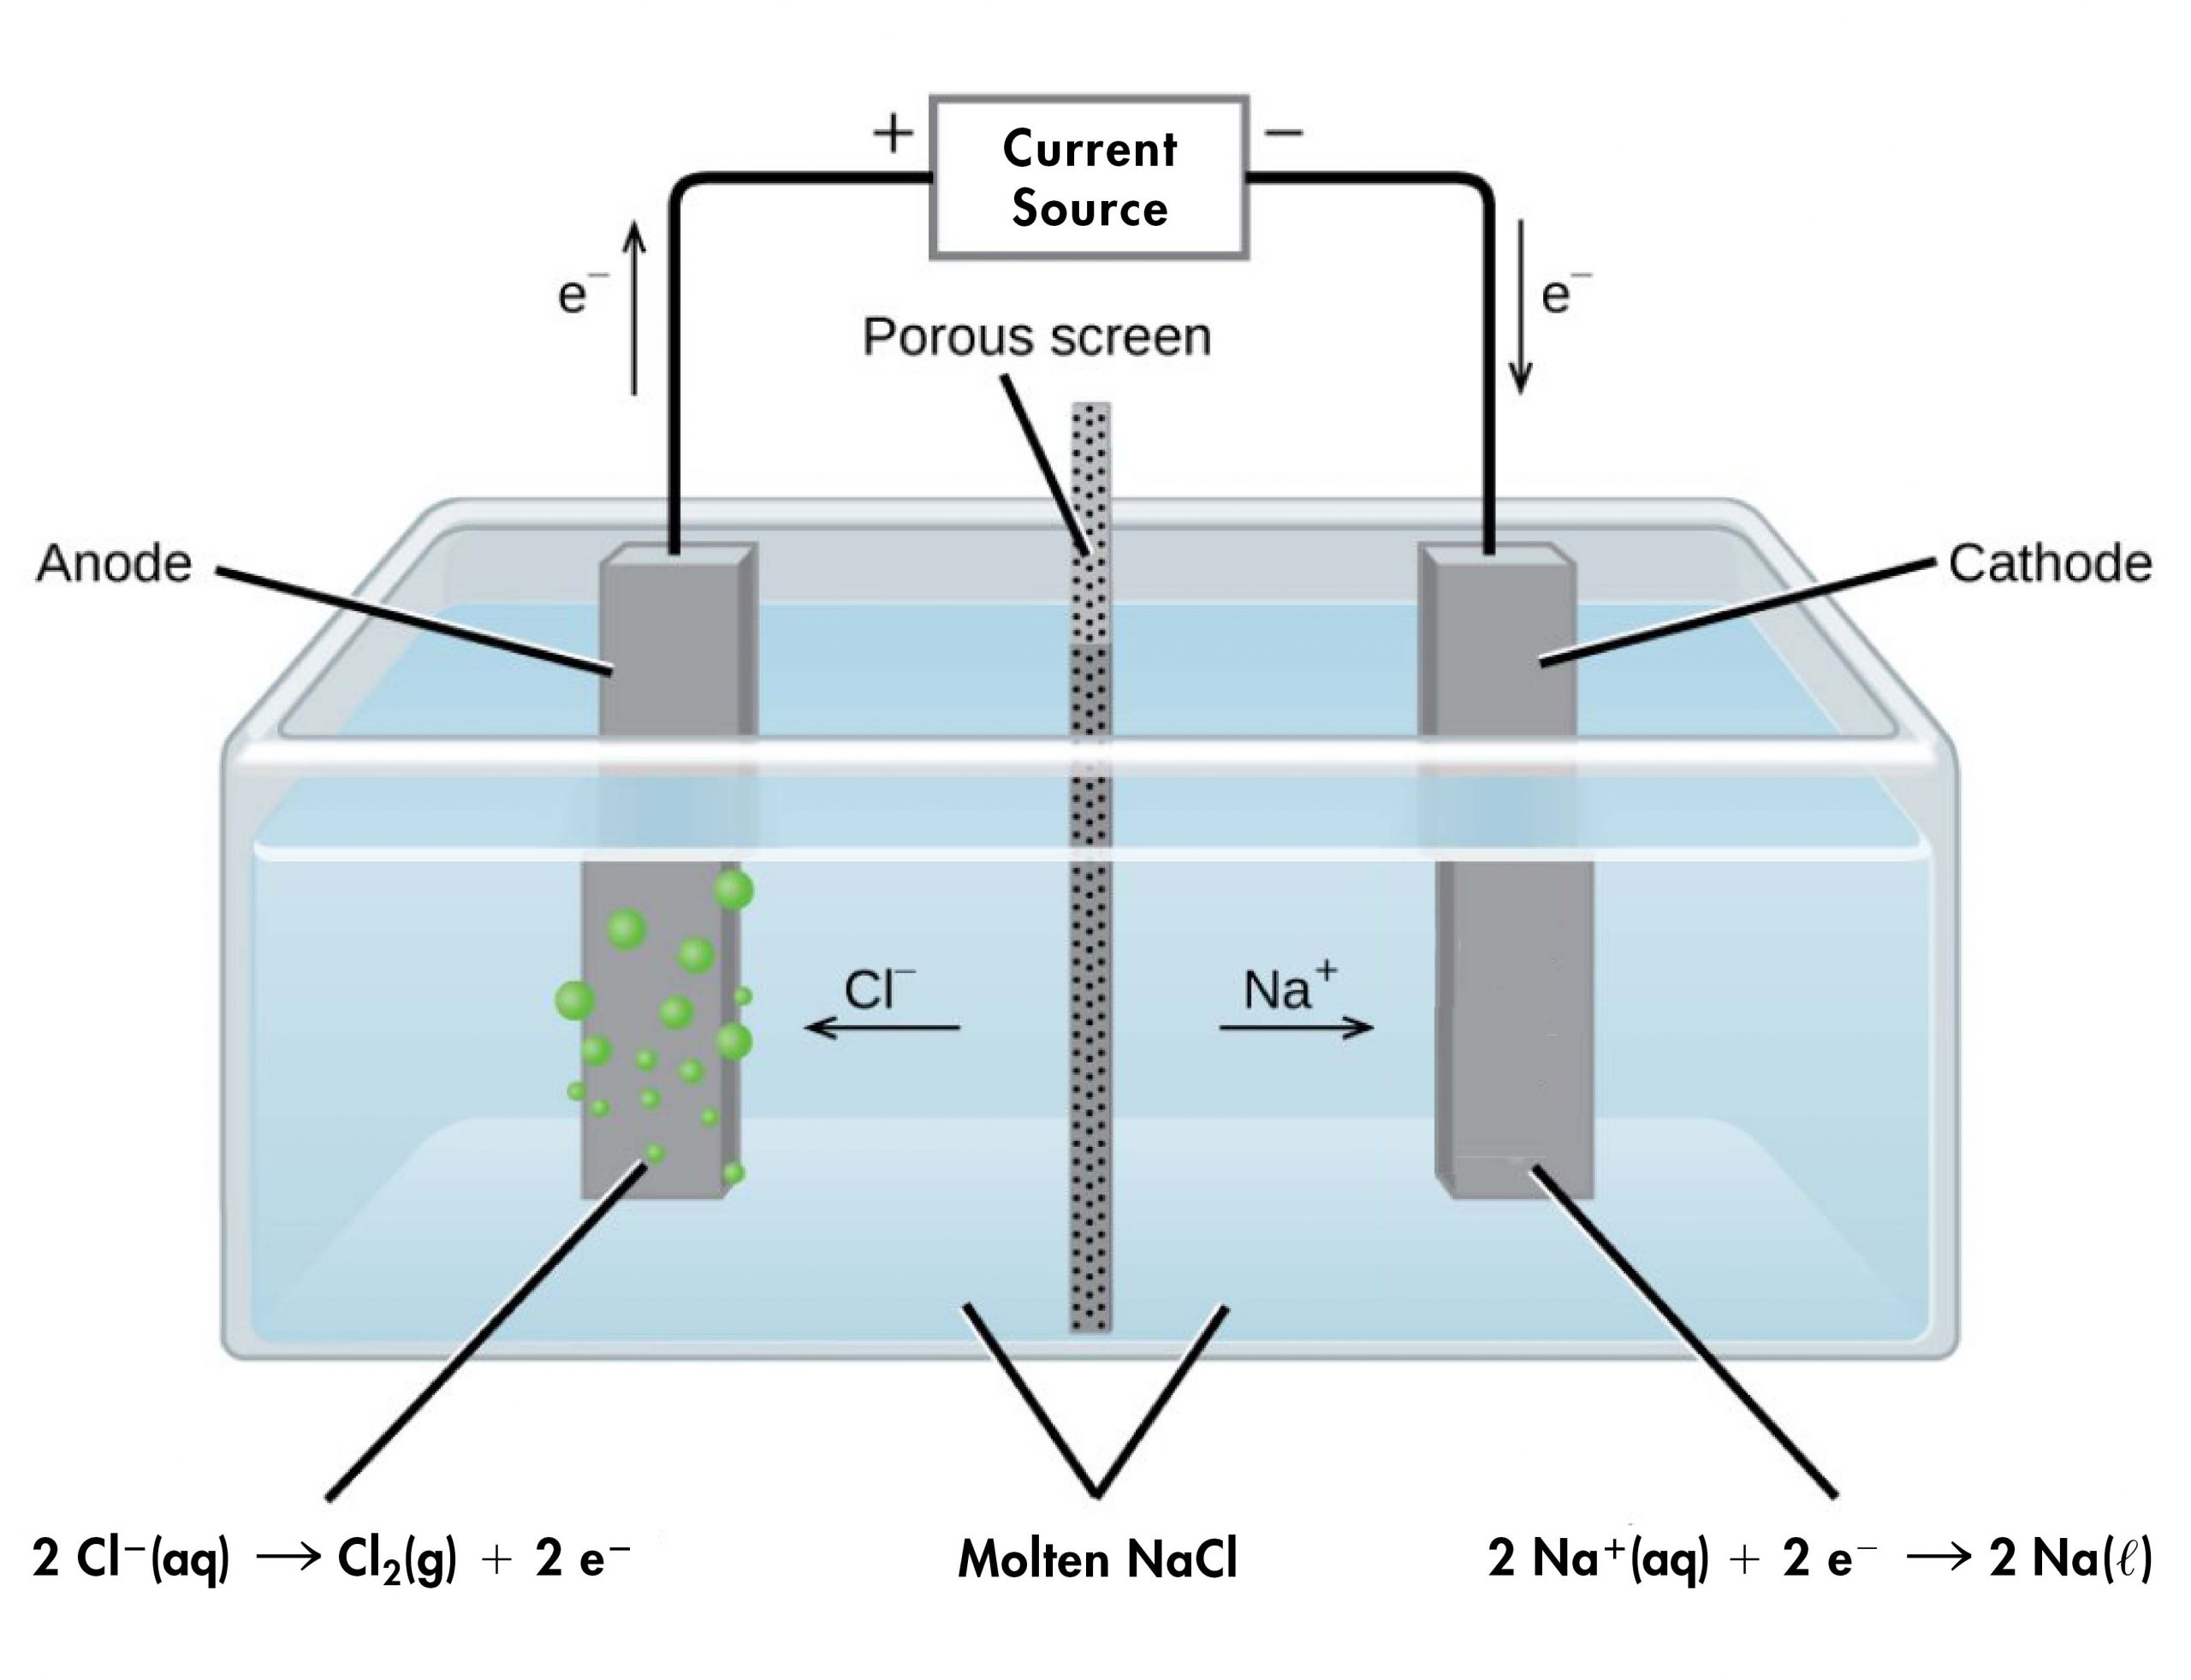 """This diagram shows a tank containing a light blue liquid, labeled """"Molten N a C l."""" A vertical dark grey divider with small, evenly distributed dark dots, labeled """"Porous screen"""" is located at the center of the tank dividing it into two halves. Dark grey bars are positioned at the center of each of the halves of the tank. The bar on the left, which is labeled """"Anode"""" has green bubbles originating from it. The bar on the right which is labeled """"Cathode"""" has no bubbles originating from it. An arrow points left from the center of the tank toward the anode, which is labeled """"C l superscript negative."""" An arrow points right from the center of the tank toward the cathode, which is labeled """"N a superscript plus."""" A line extends from the tops of the anode and cathode to a rectangle centrally placed above the tank which is labeled """"Current source."""" An arrow extends upward above the anode to the left of the line which is labeled """"e superscript negative."""" A plus symbol is located to the left of the current source and a negative sign is located to its right. An arrow points downward along the line segment leading to the cathode. This arrow is labeled """"e superscript negative."""" Below the left side of the diagram is the label """"2 C l superscript negative ( a q ) right pointing arrow C l subscript 2 ( g ) plus 2 e superscript negative."""" At the right, below the diagram is the label """"2 N a superscript positive ( a q ) plus 2 e superscript negative right pointing arrow 2 N a ( l )."""""""